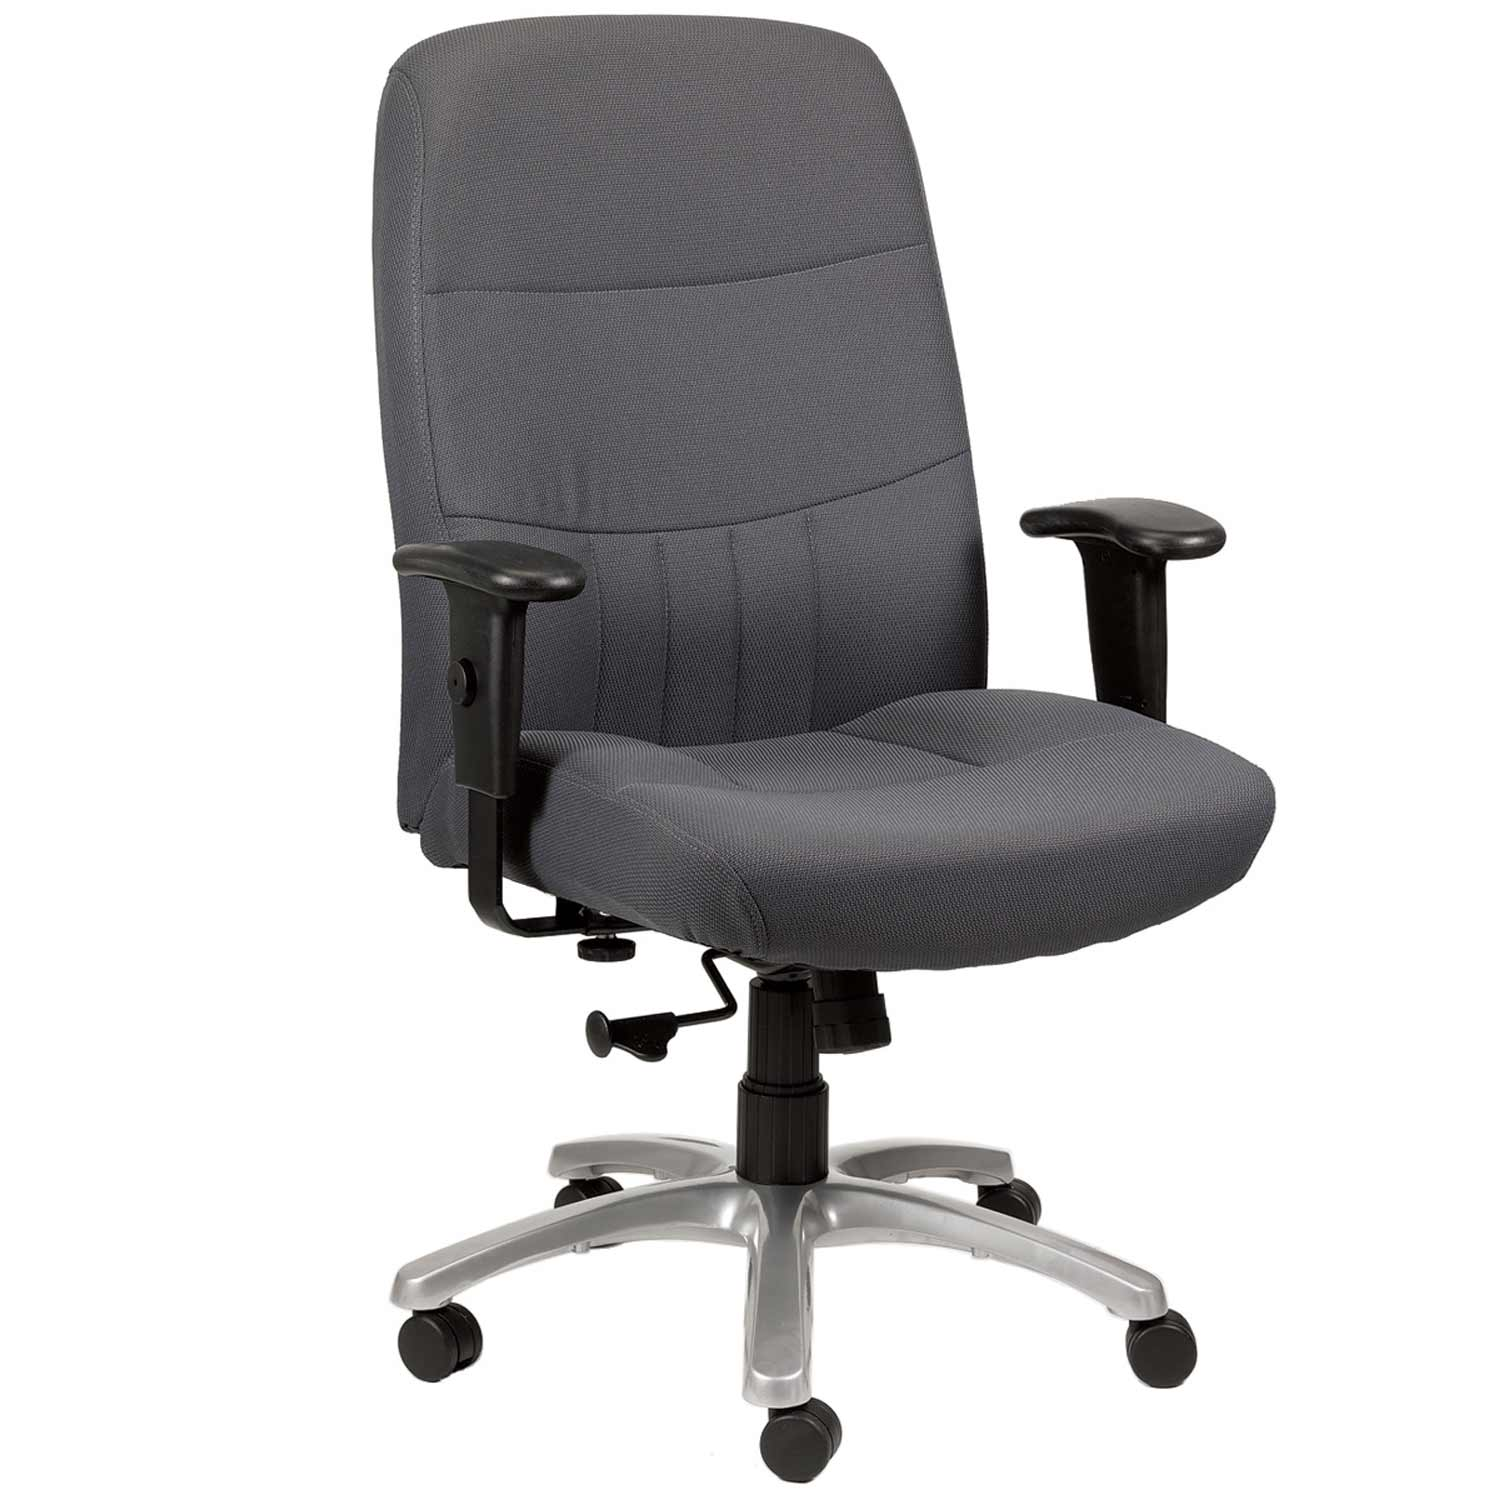 Eurotech Excelsior Tall Desk Chairs for Manager